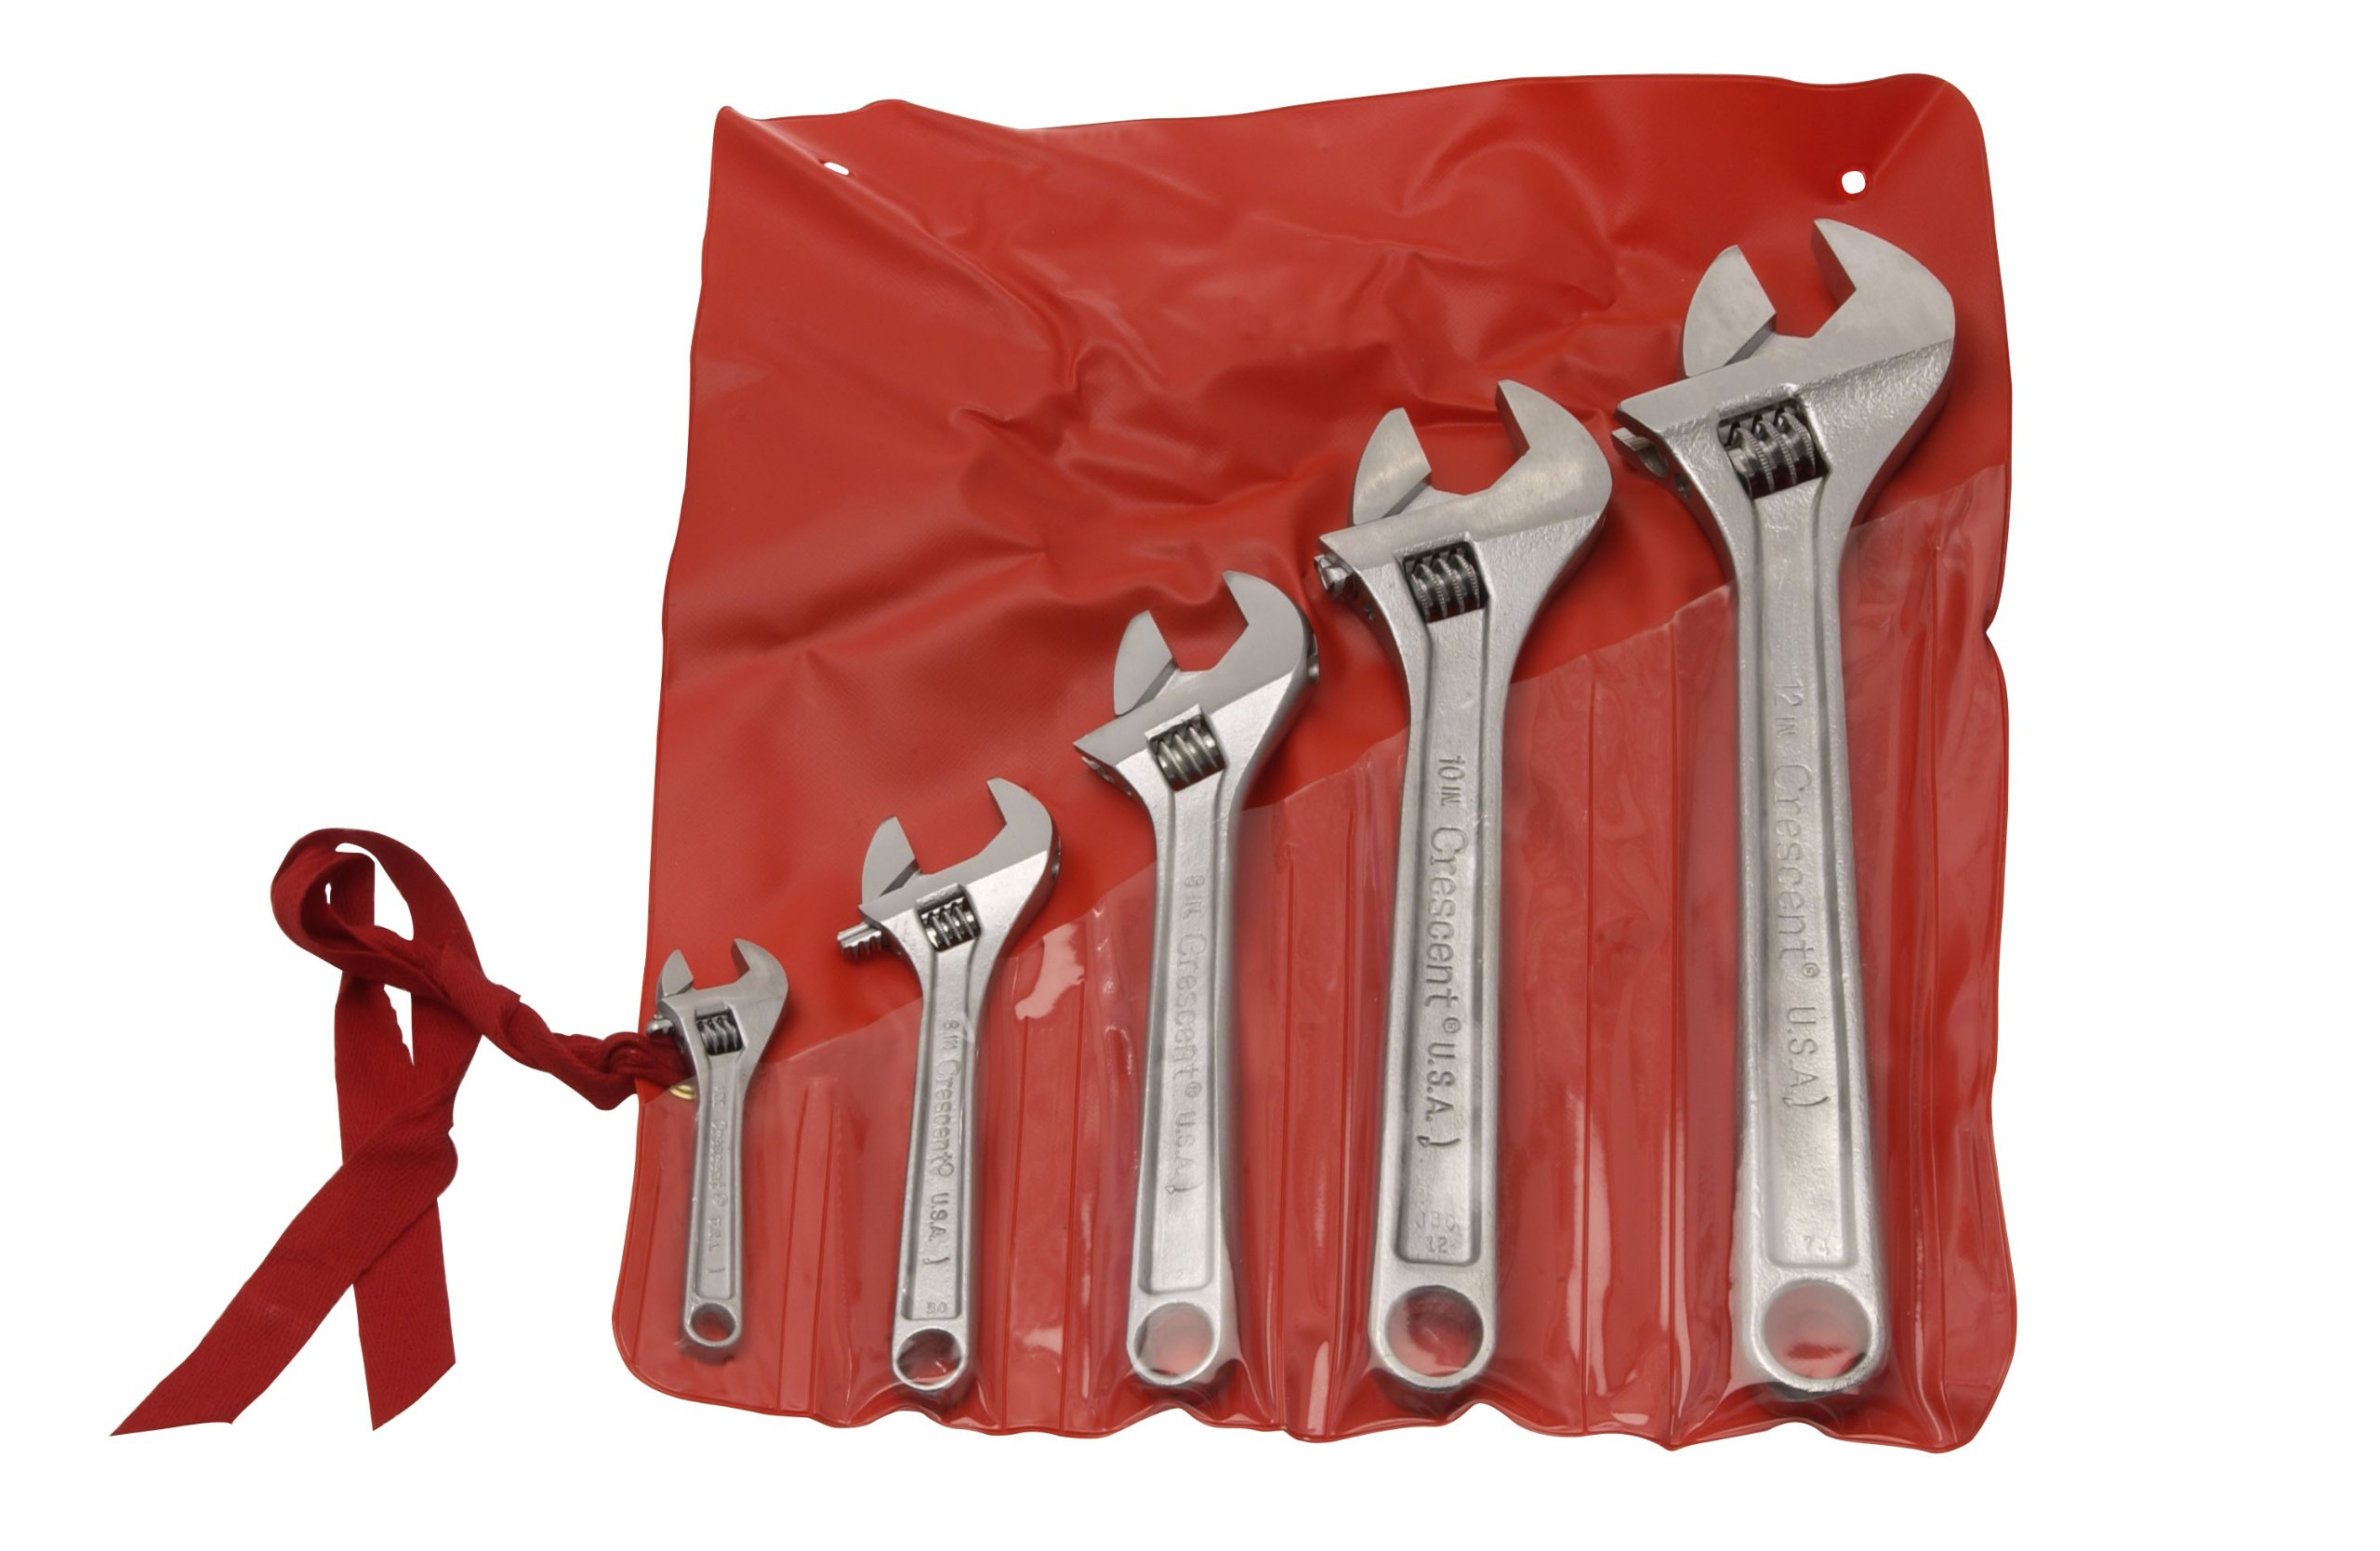 Crescent AC5 Home Hand Tools Wrenches Adjustable Sets